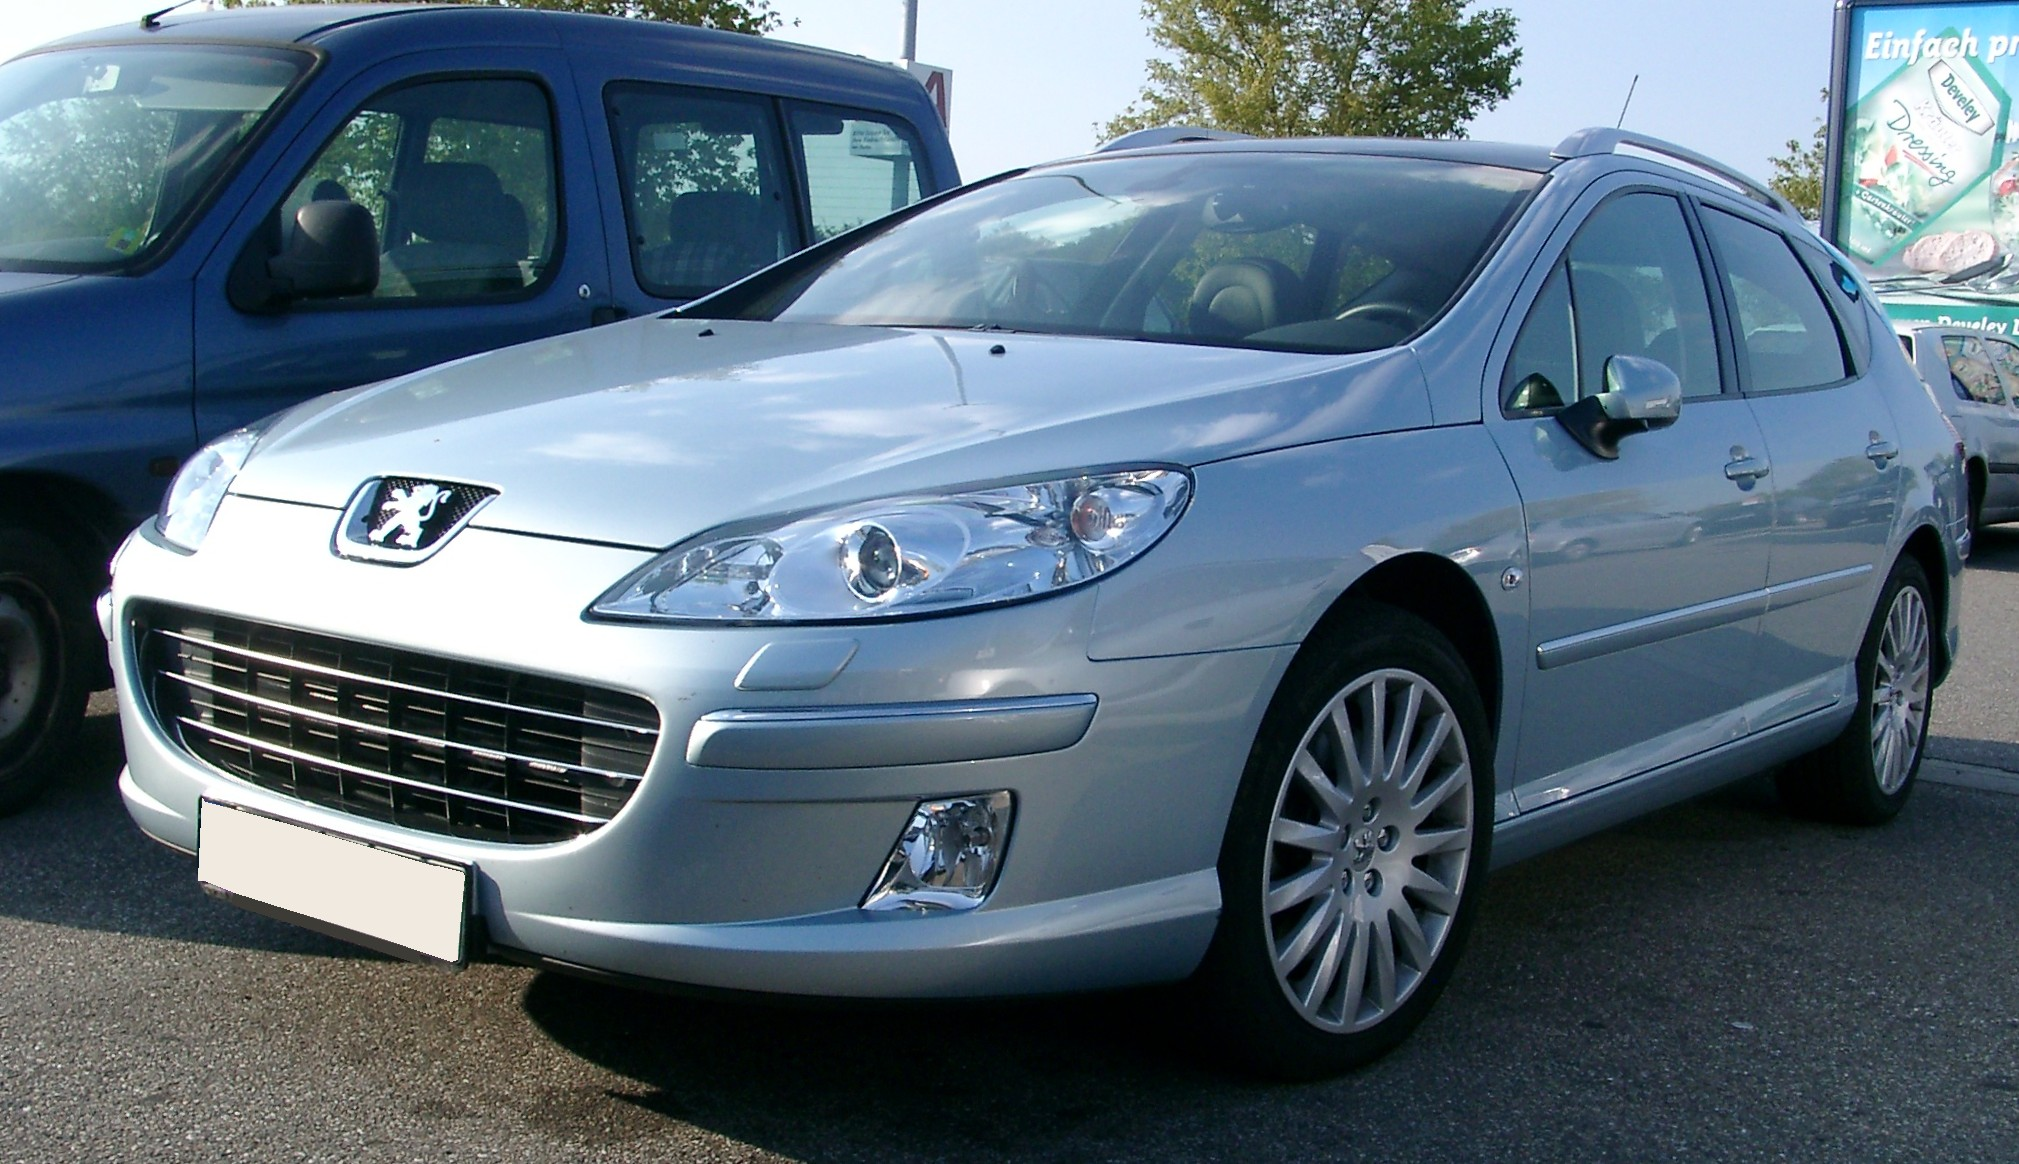 2007 peugeot 407 sw pictures information and specs auto. Black Bedroom Furniture Sets. Home Design Ideas